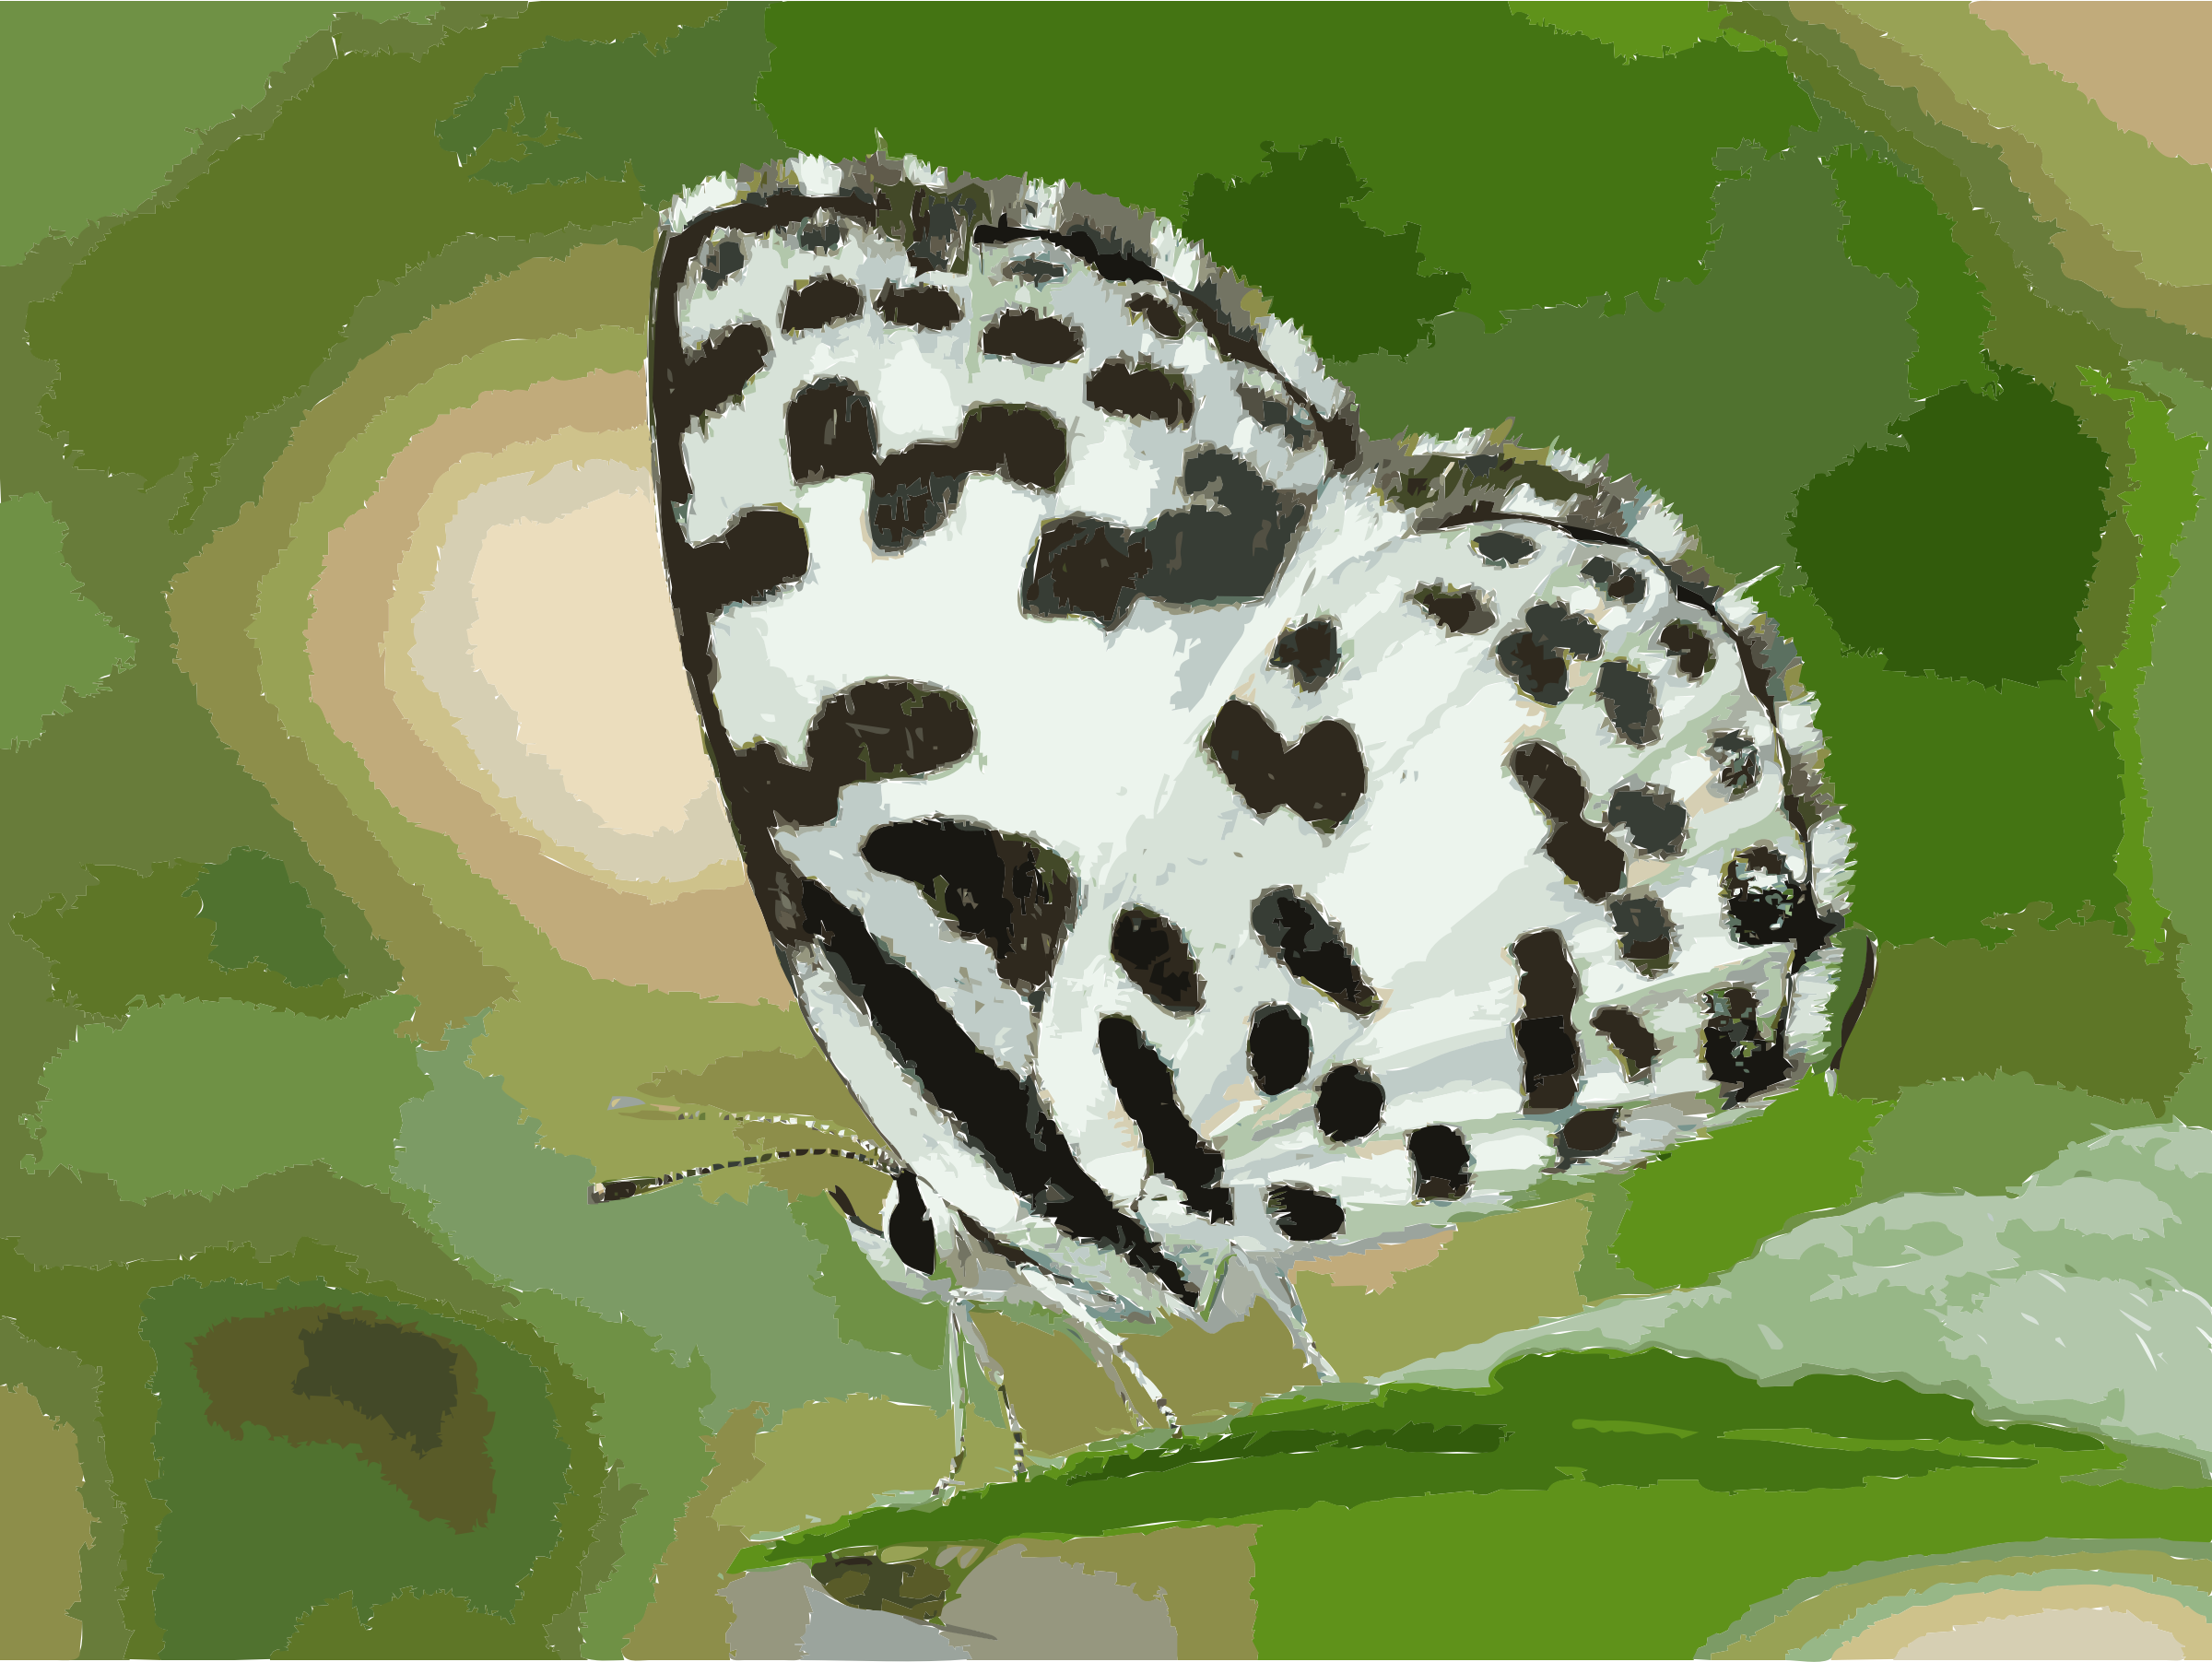 Common Pierrot Castalius rosimon by kadavoor by 5m2l1q+47bs4p7ipm8xs